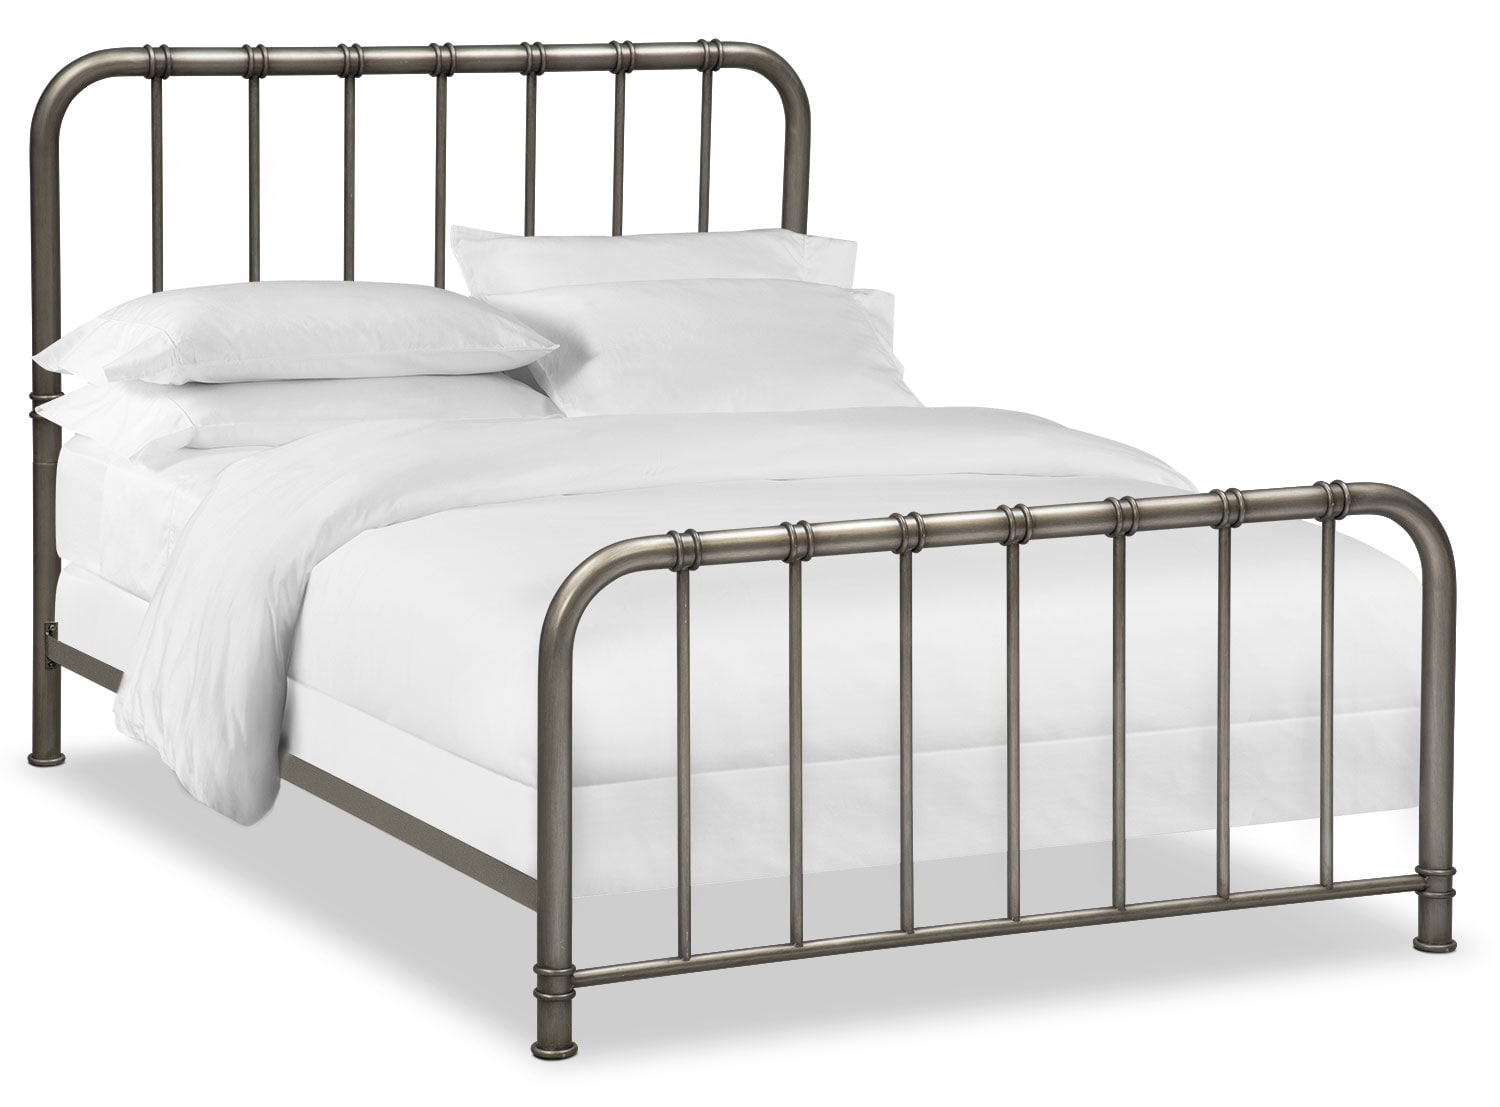 Bedroom Furniture - Pendleton King Bed - Gunmetal